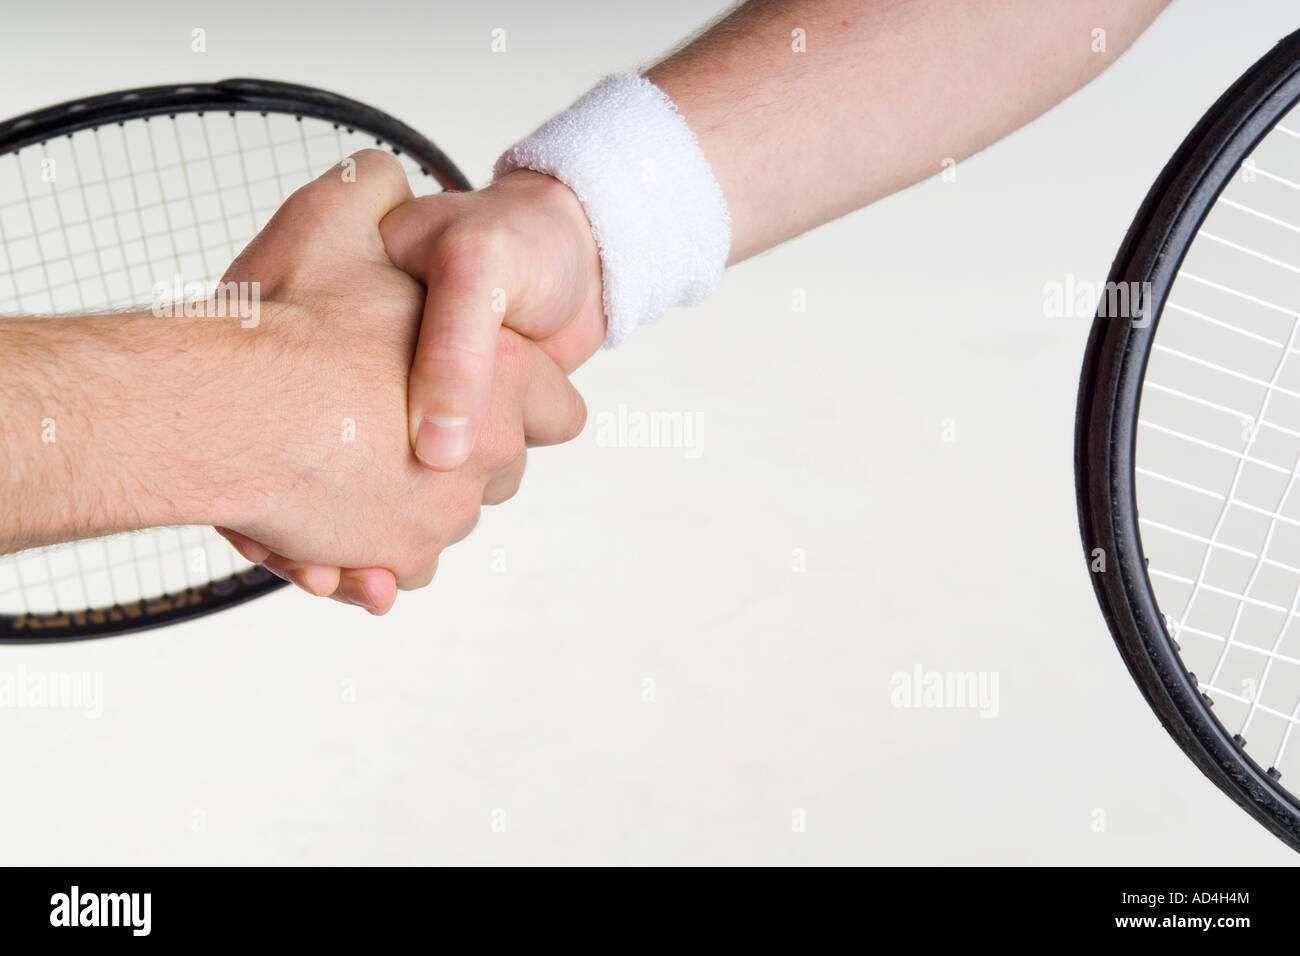 Two tennis players shaking hands - Stock Image